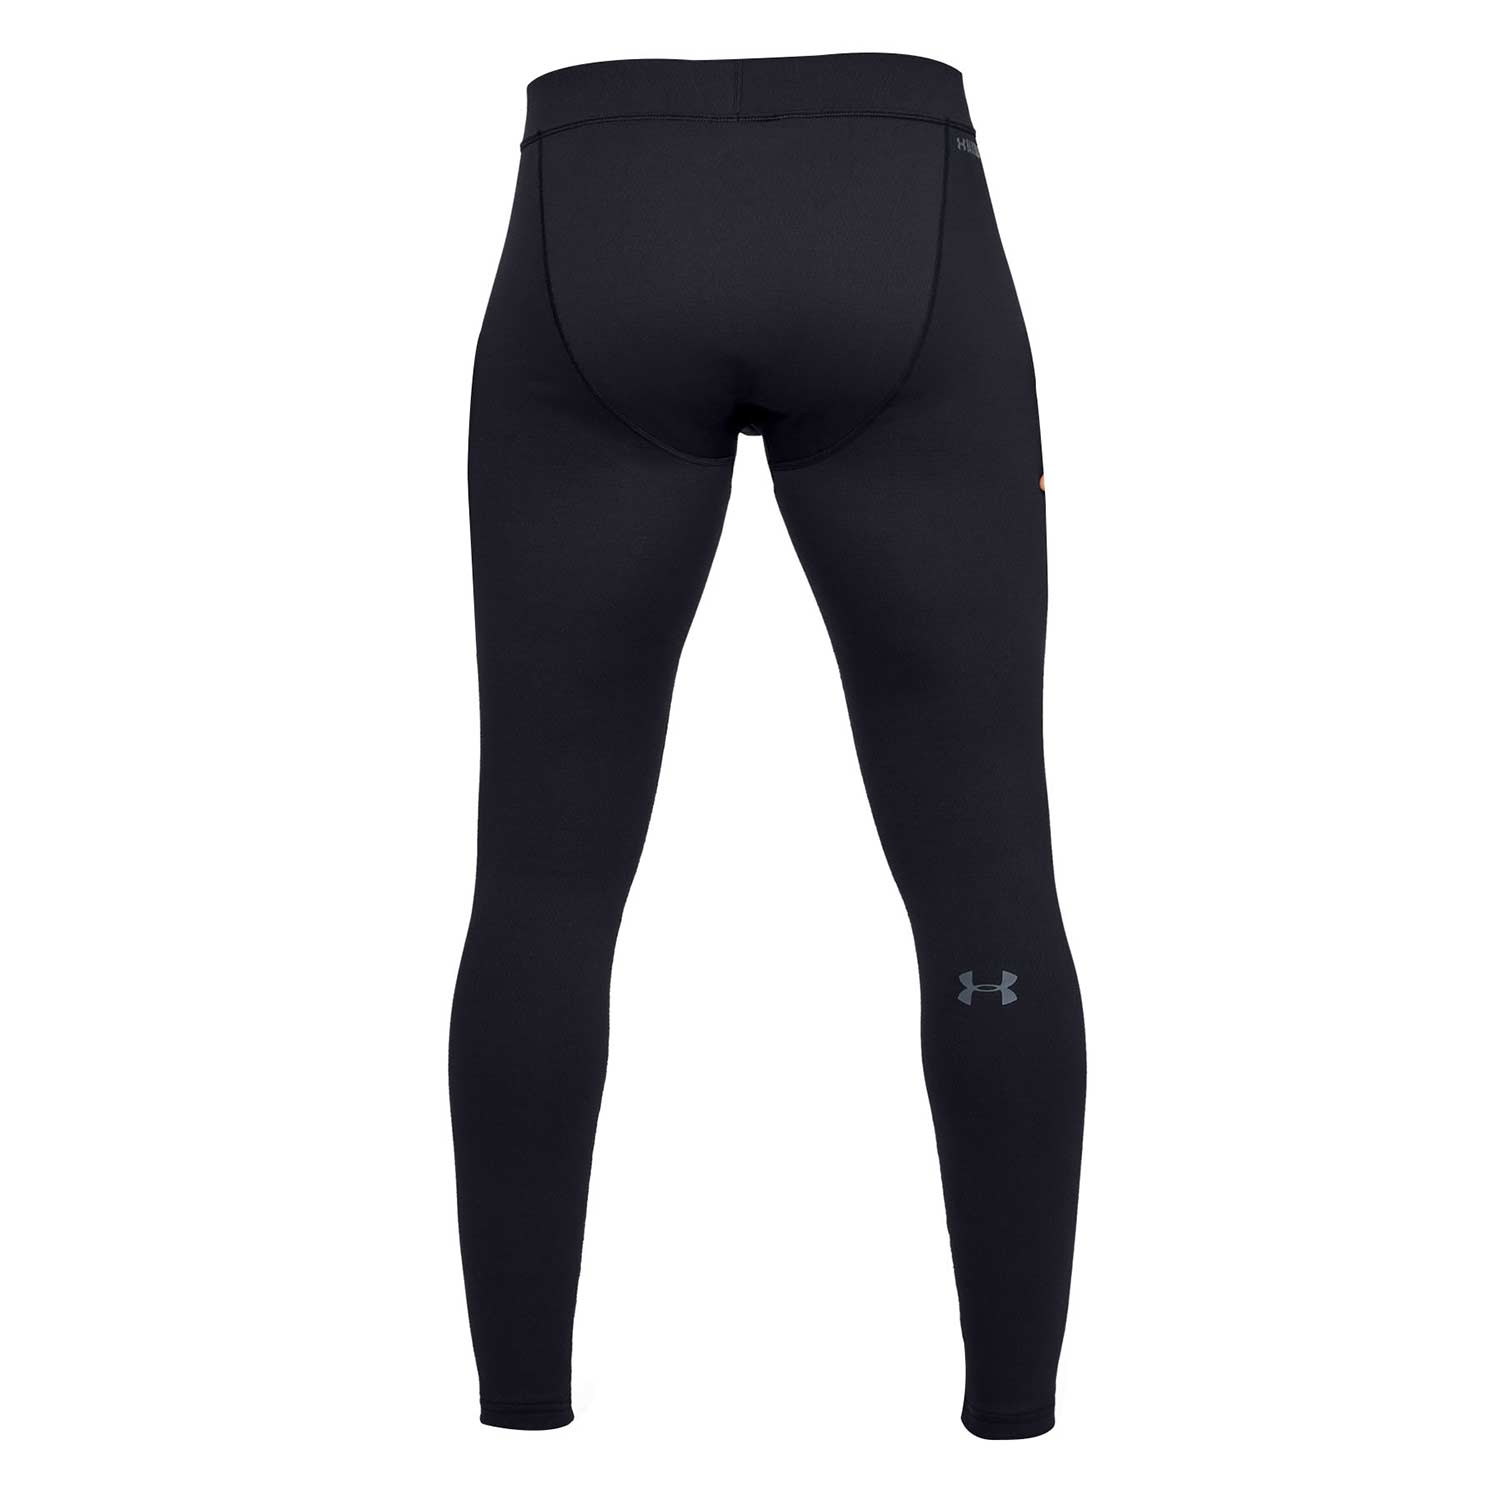 best sell pretty nice 2019 clearance sale Under Armour ColdGear Base 3.0 Leggings.